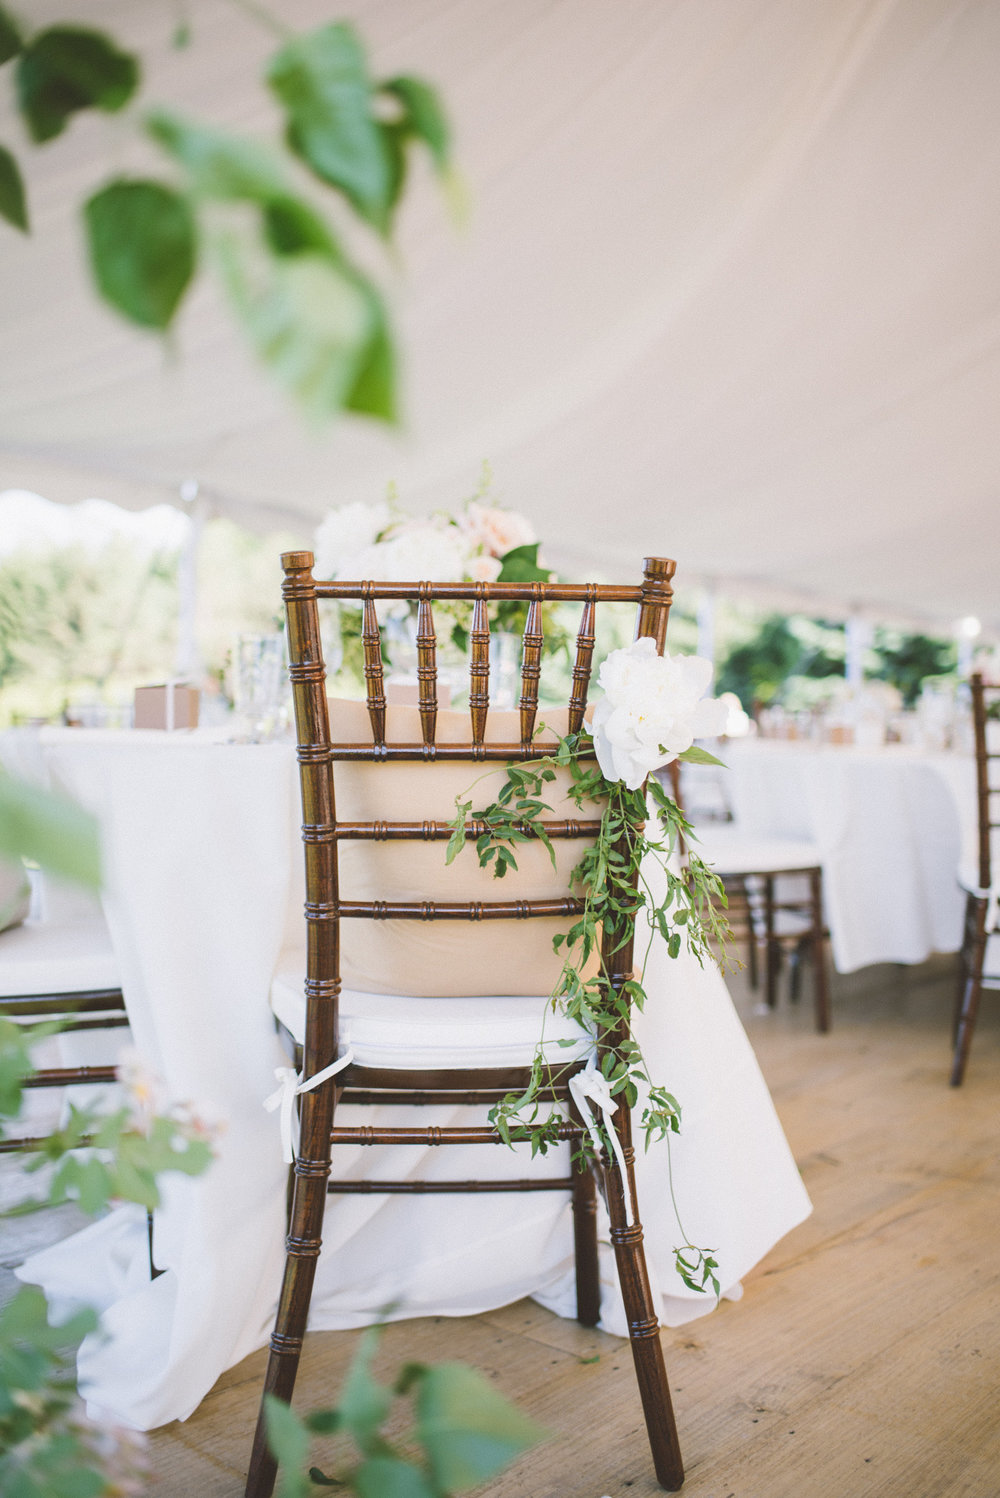 amanda cowley events niagara wedding planner kurtz orchard gracewood estate blush peony greenery centerpieces natural vintage mirrors chiavari chairs